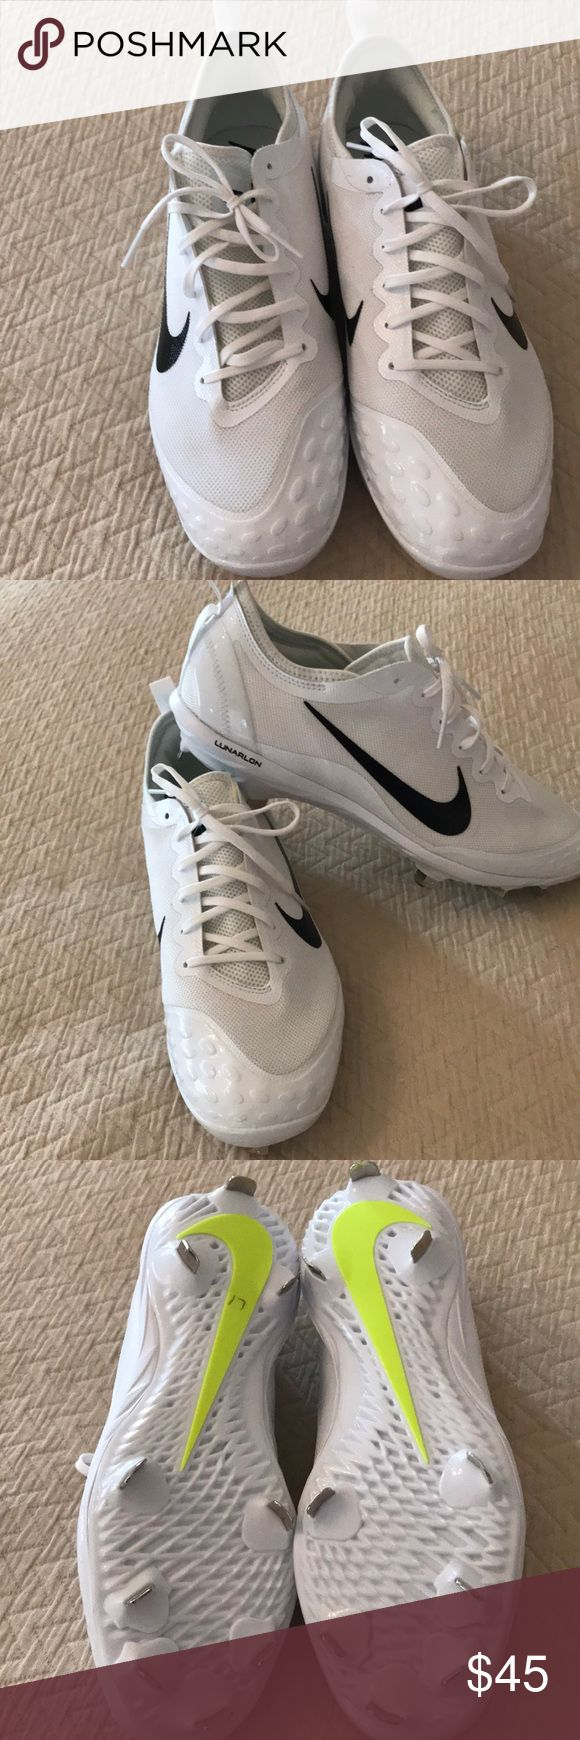 Nike women's metal cleats size 12 Nike women's metal spike cleats size 12. White with black nike swoosh and bright yellow doe detail. NWOT. Nike hyperdiamond  lunarlon model. Make an offer!! nike hyperdiamond Shoes Athletic Shoes